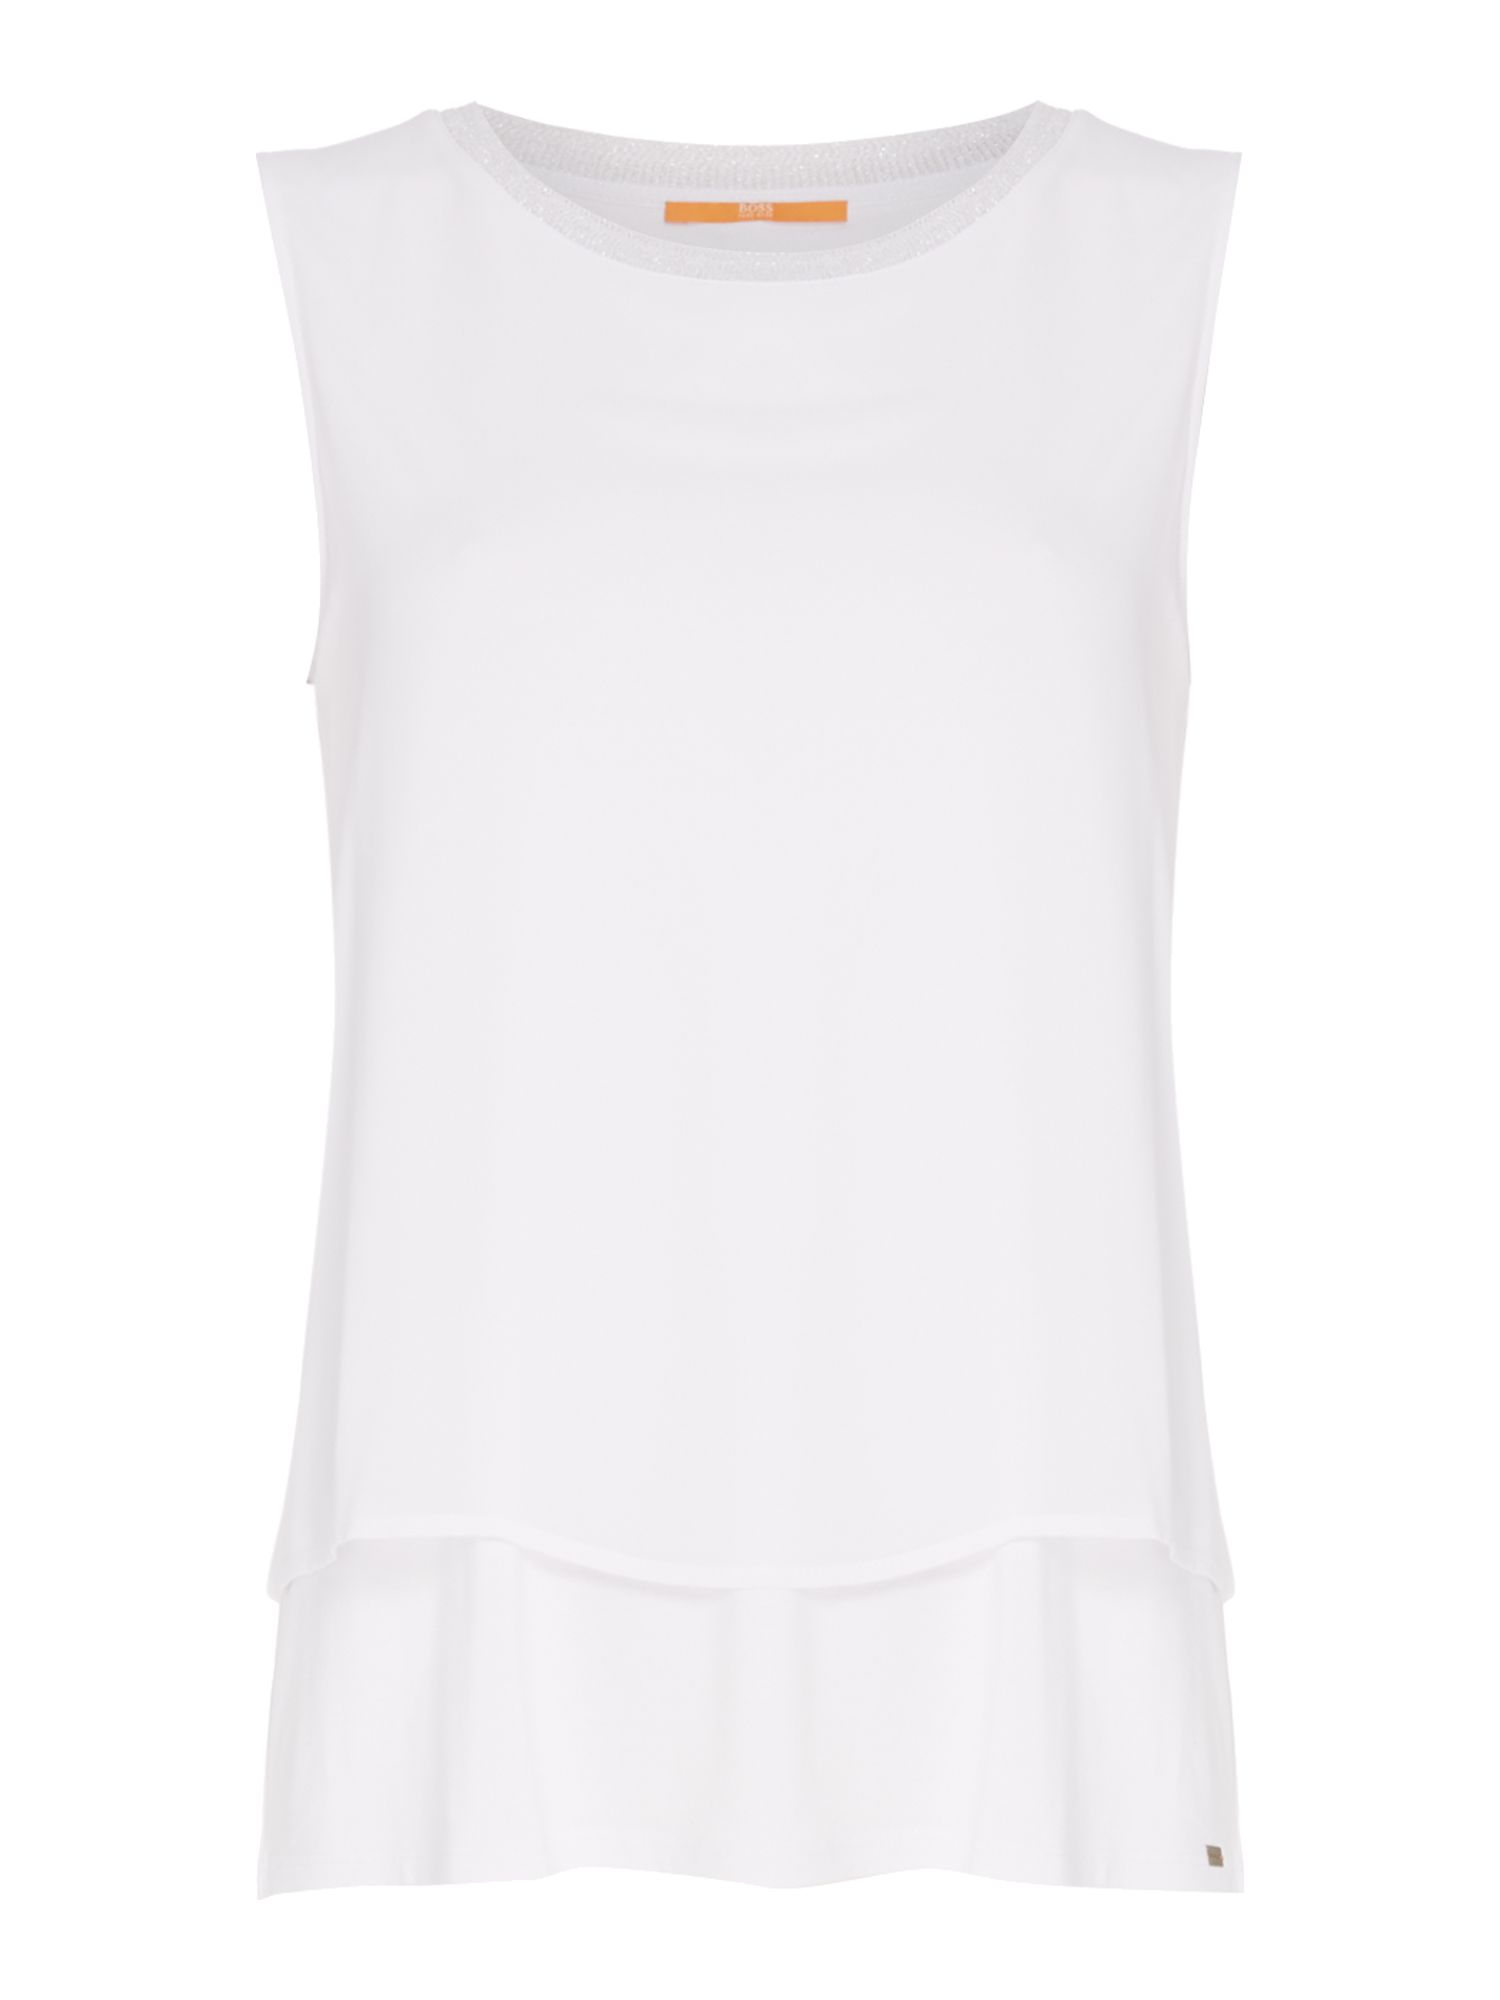 Hugo Boss Topia Embellished Neck Blouse in White, White